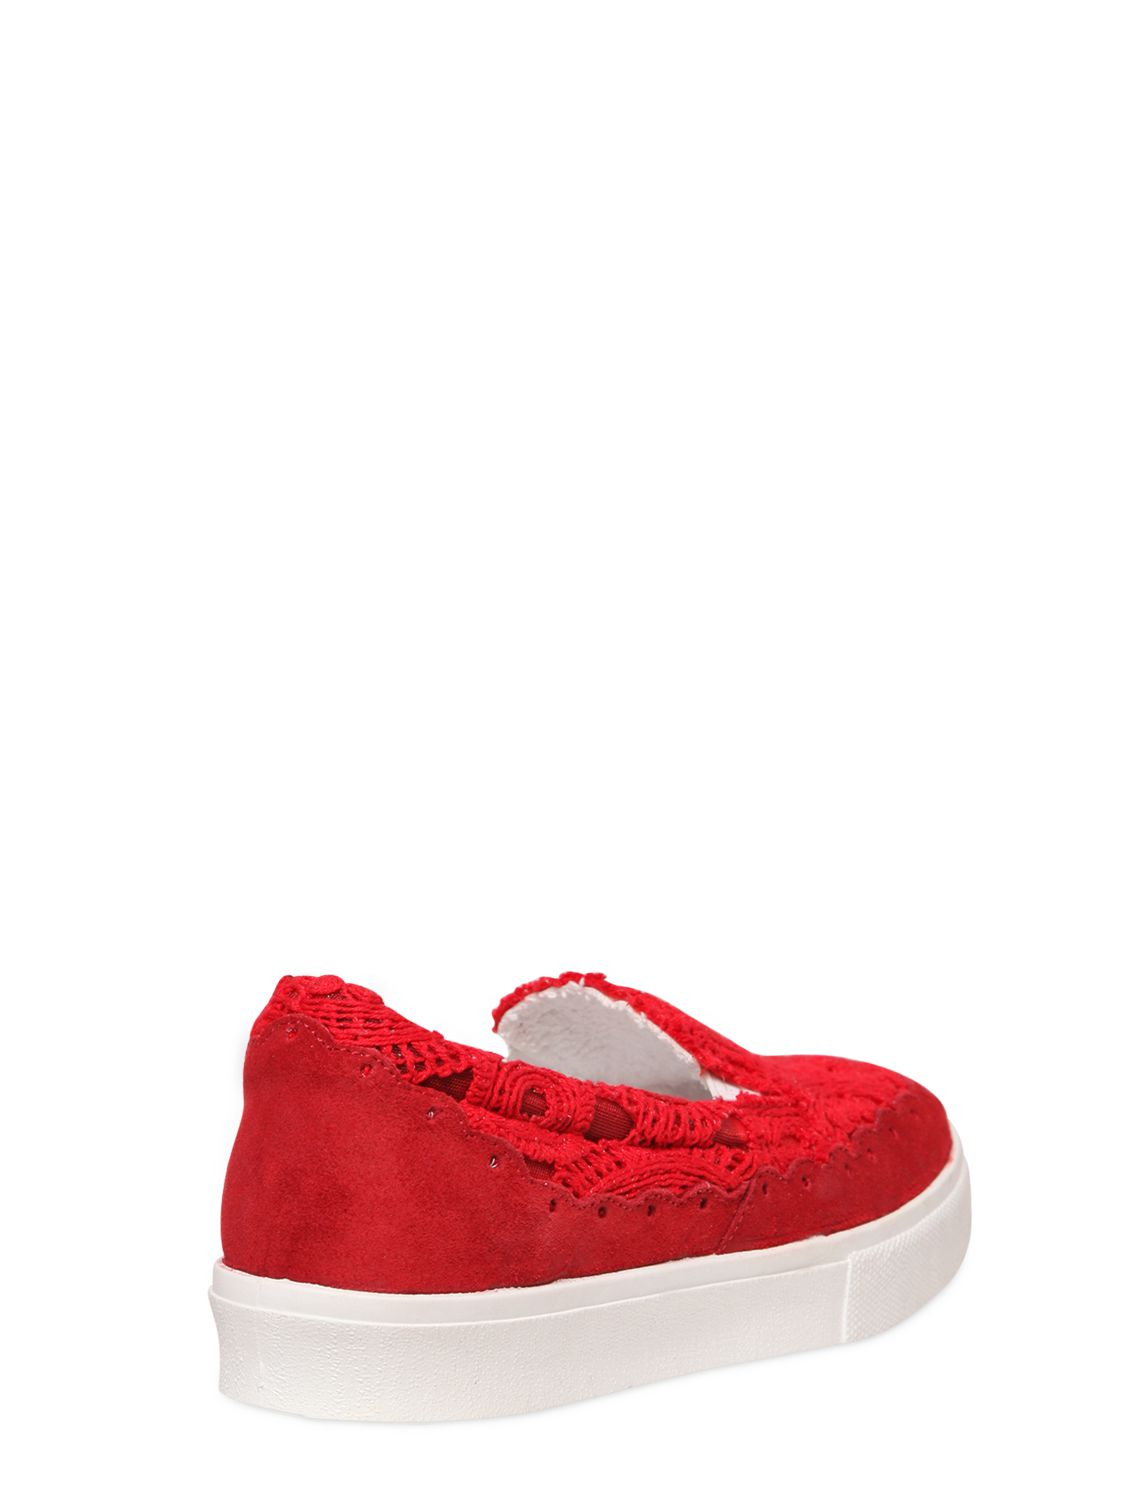 chiara ferragni 30mm macram lace sneakers in red lyst. Black Bedroom Furniture Sets. Home Design Ideas